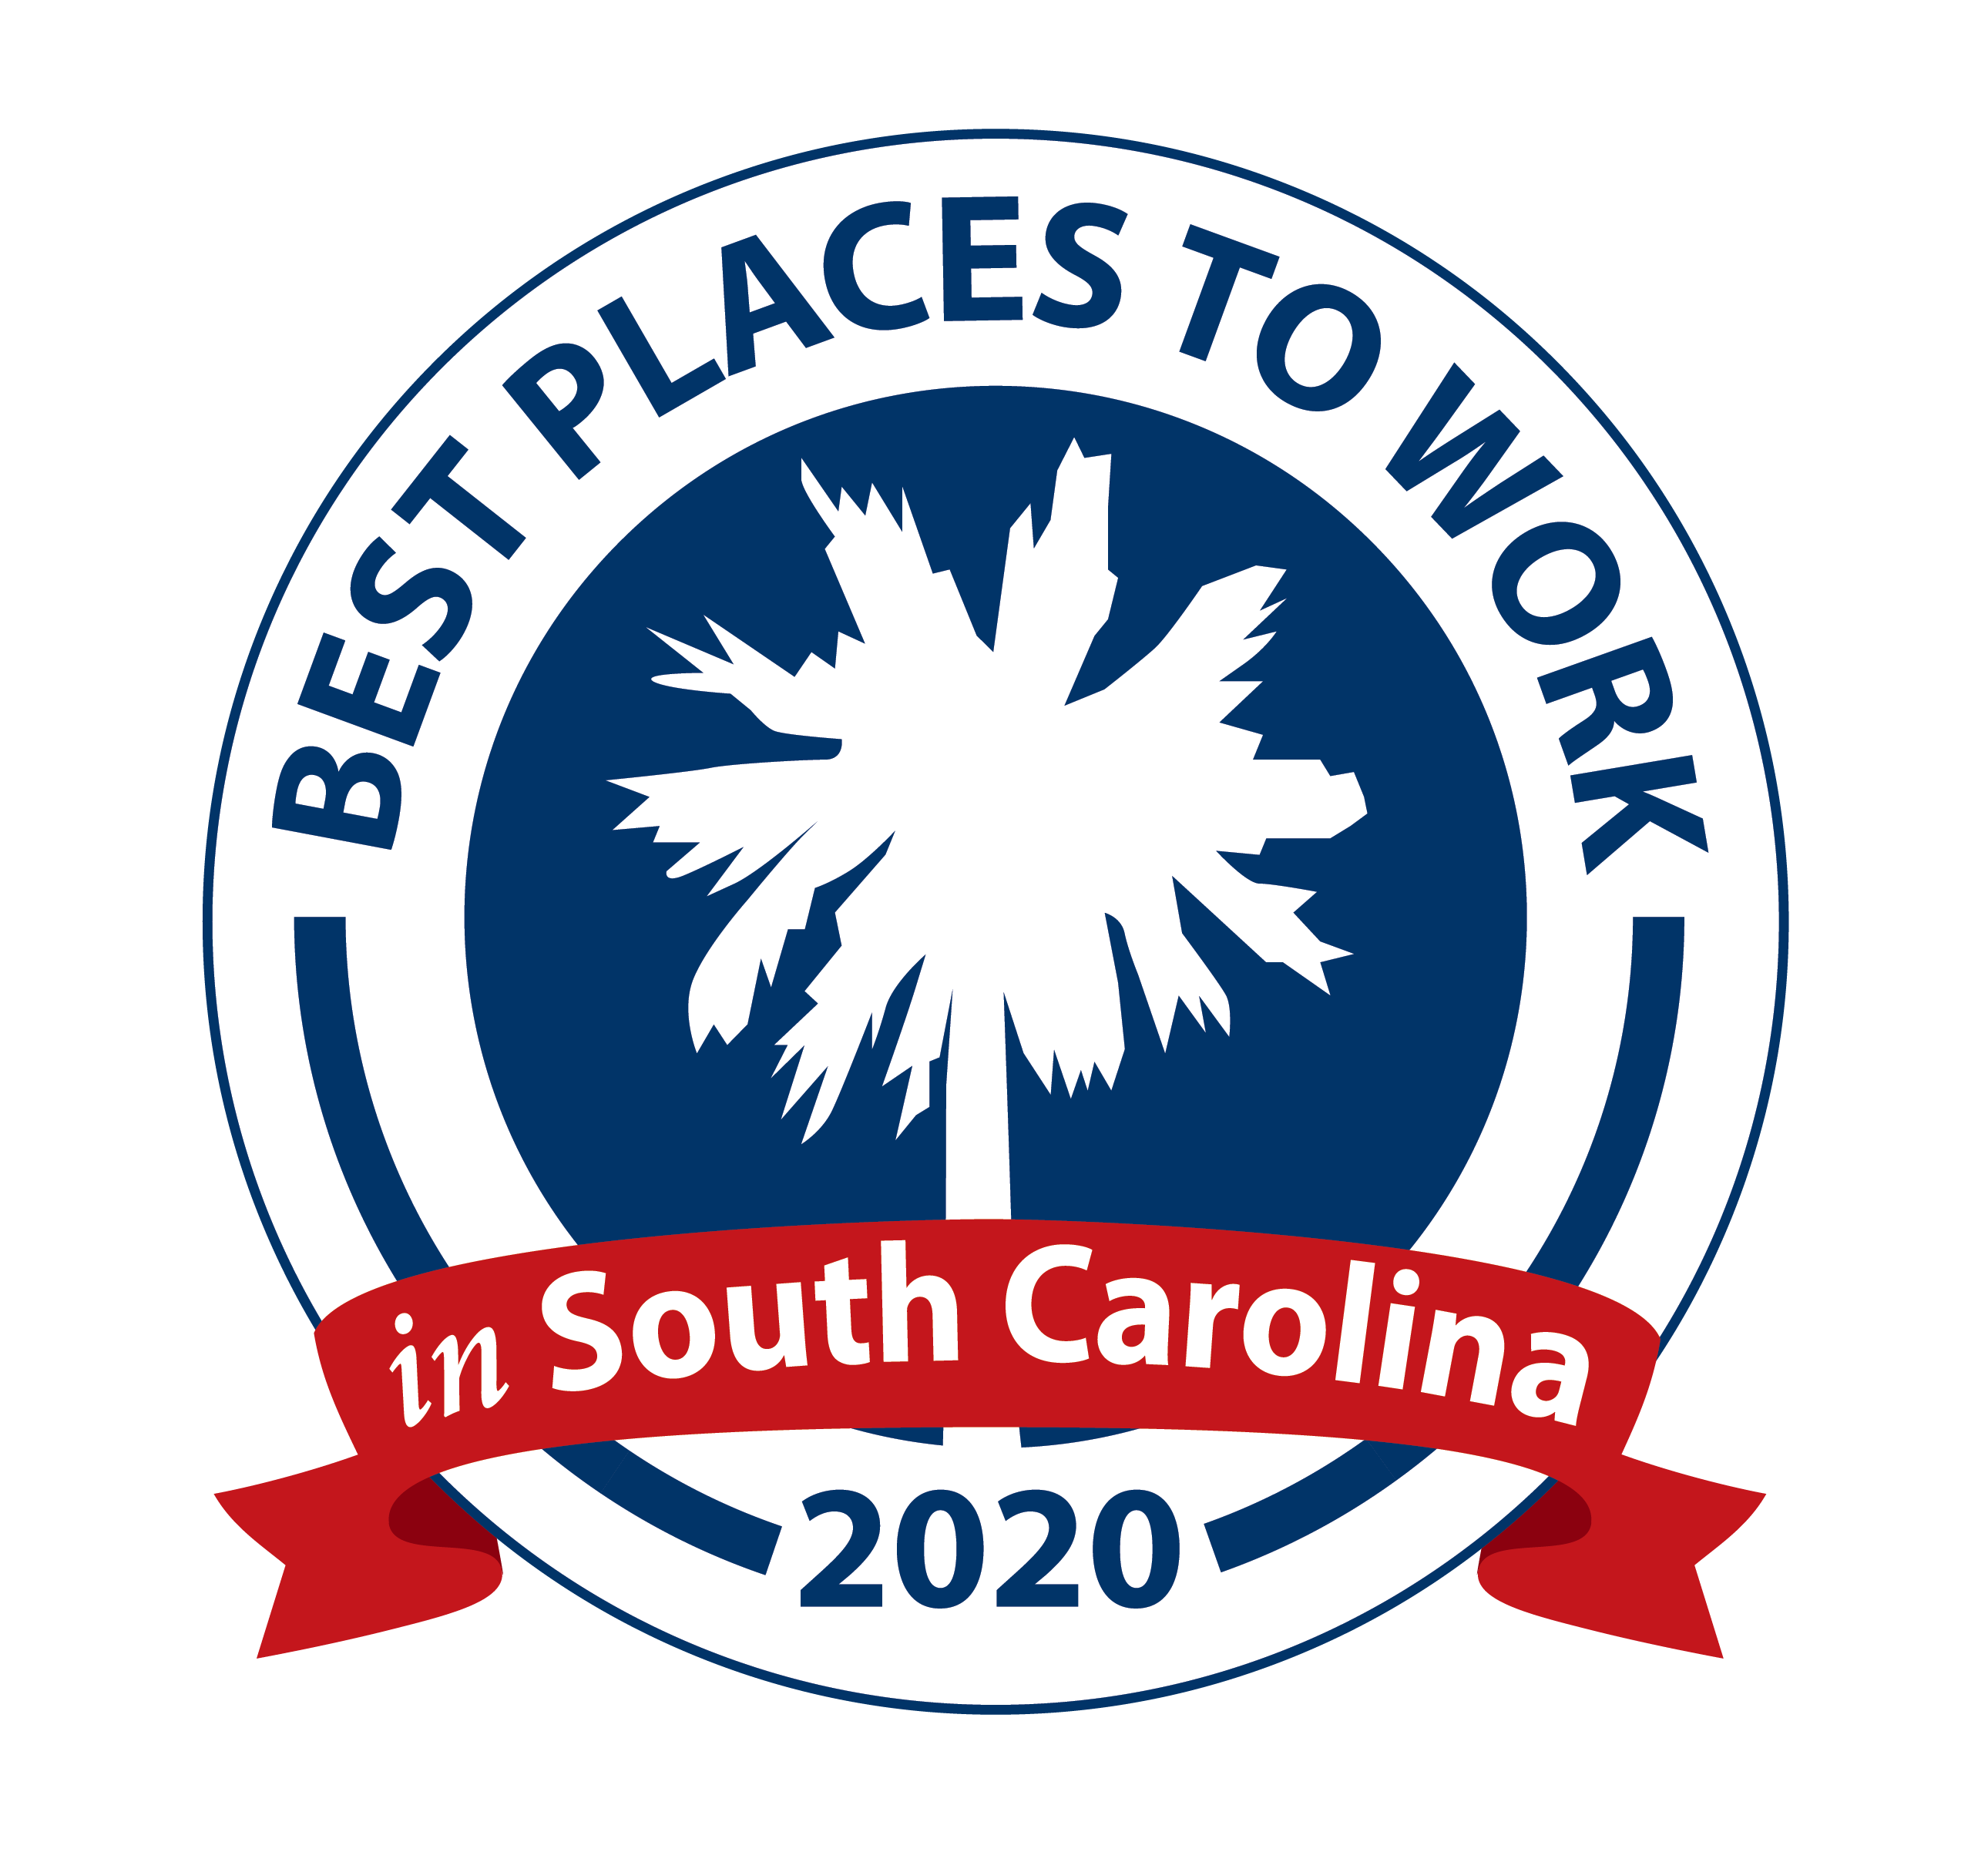 Best place to work in South Carolina Award Icon